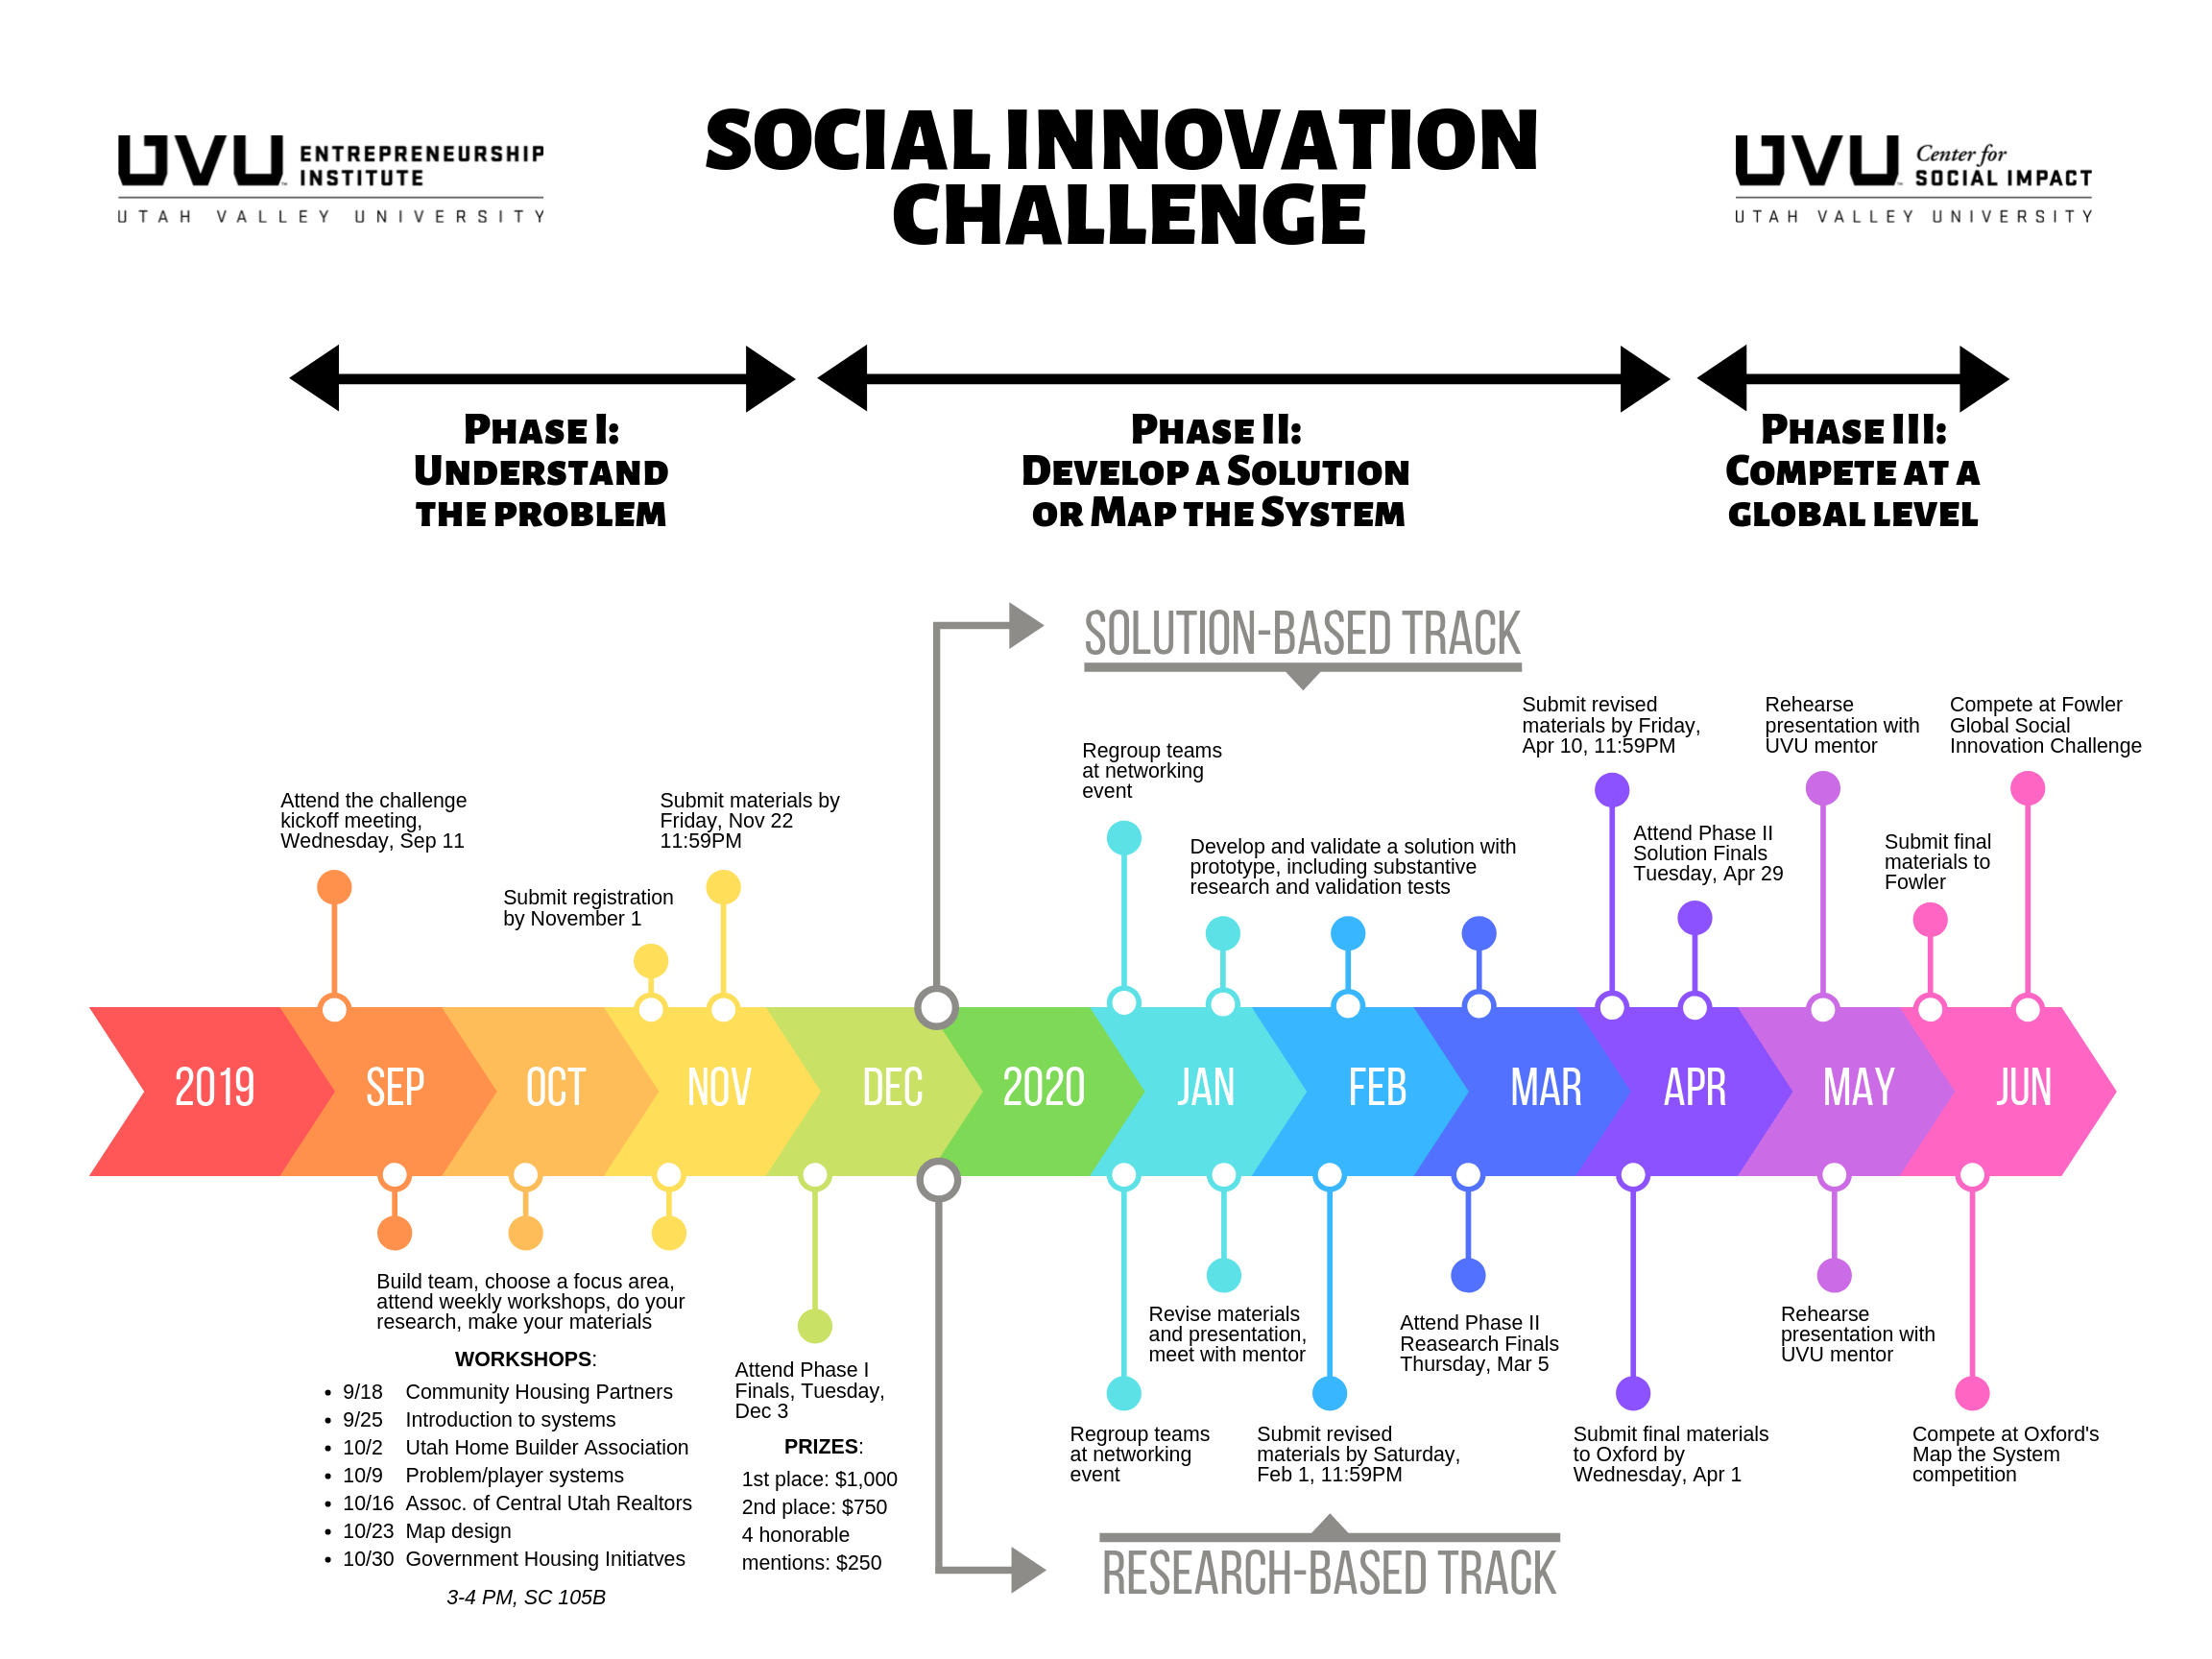 UVU Social Innovation Challenge Timeline Graphic